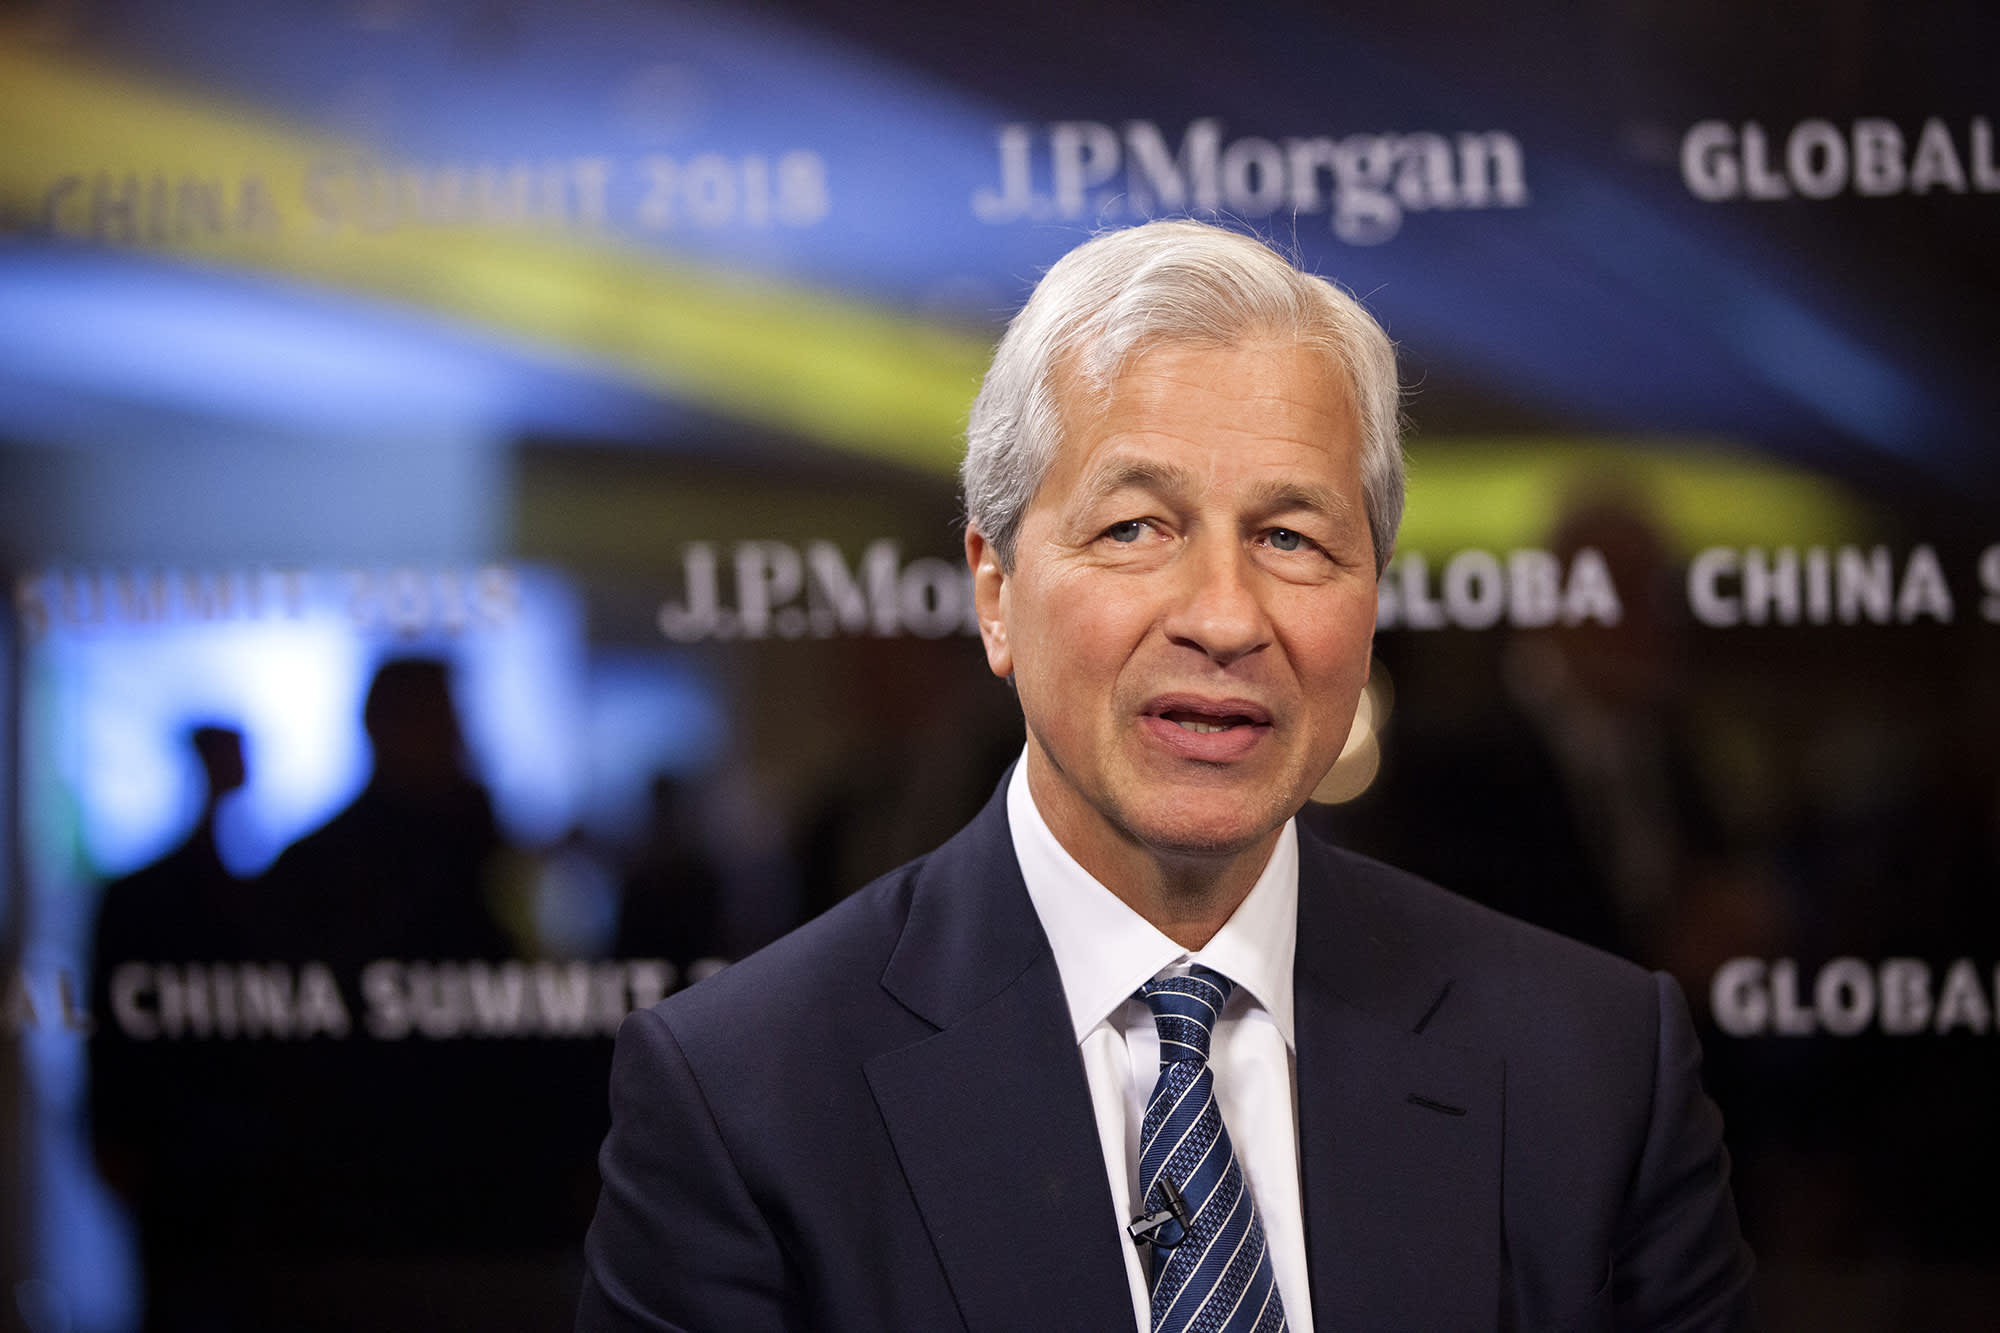 JP Morgan wants to lead tech IPOs vs Morgan Stanley and Goldman Sachs